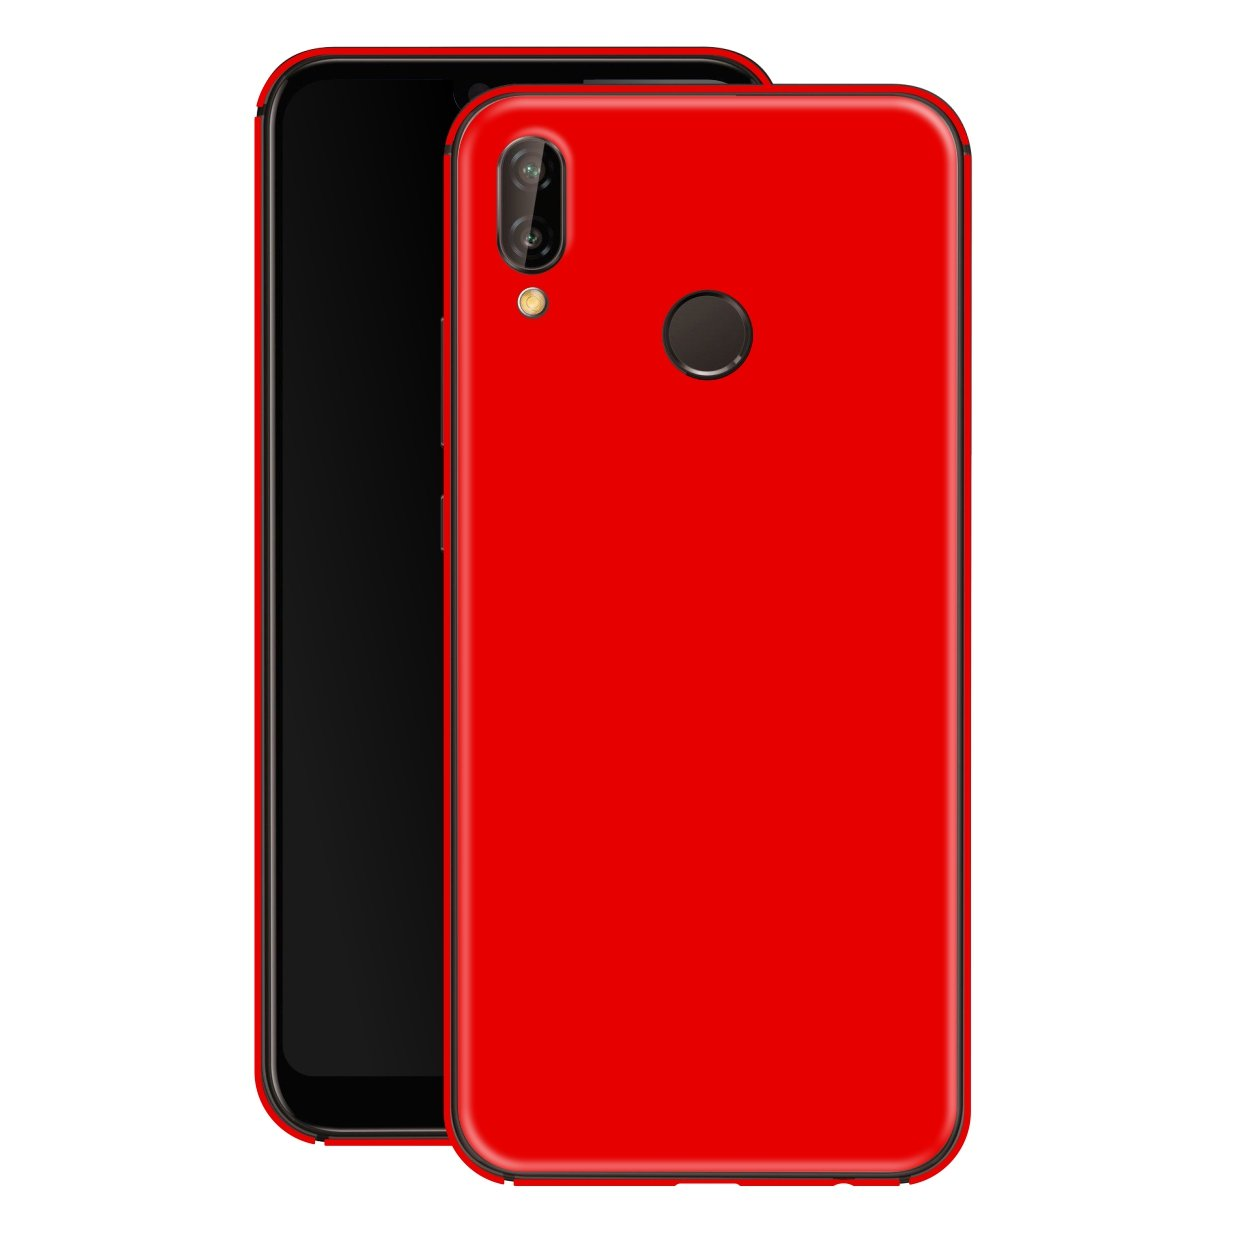 Huawei P20 LITE Red Matt Skin, Decal, Wrap, Protector, Cover by EasySkinz | EasySkinz.com